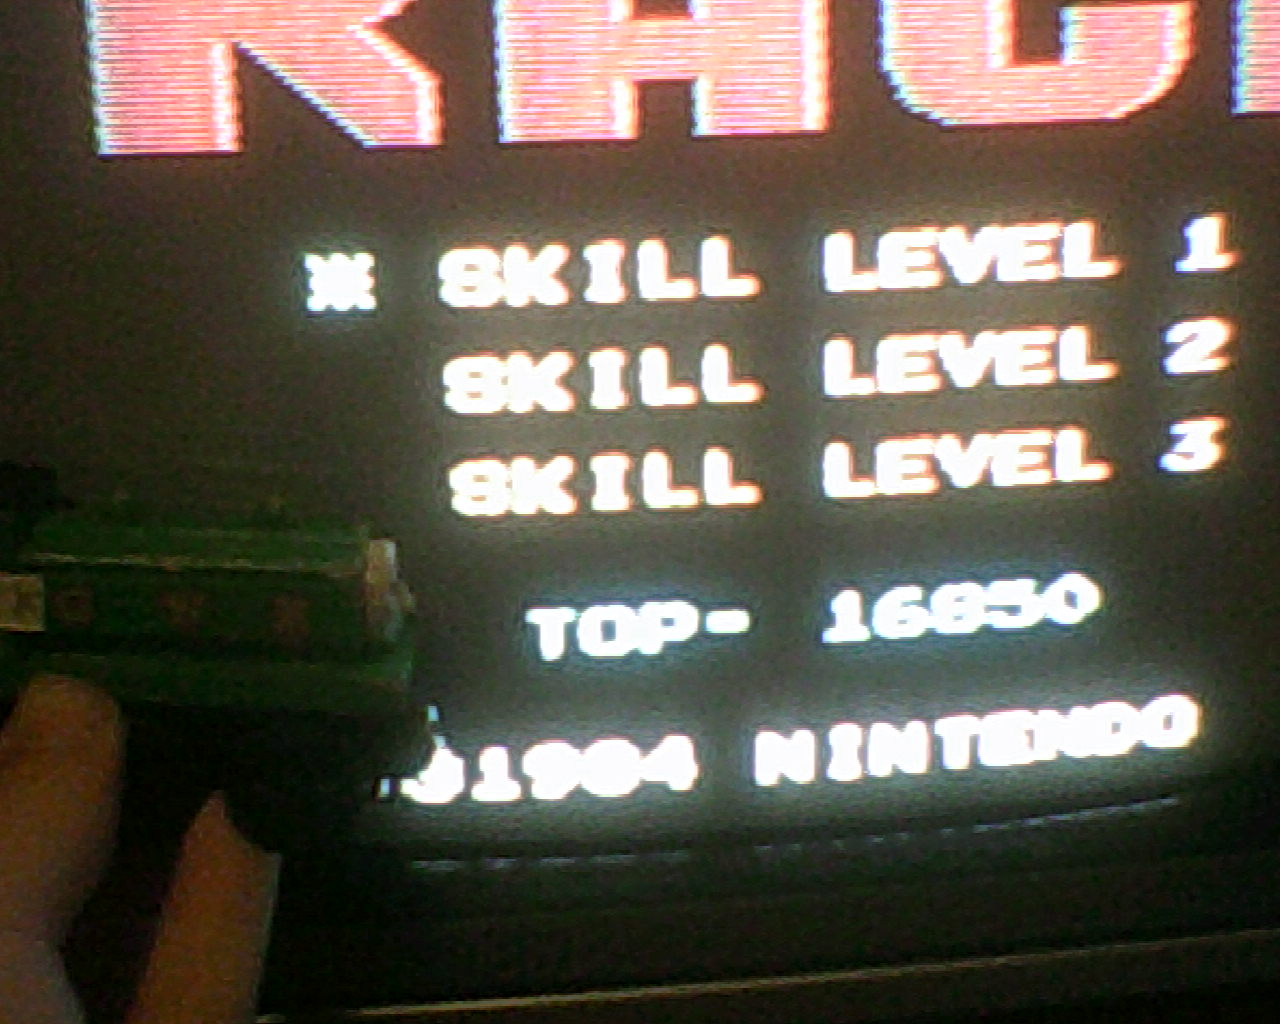 F-1 Race: Skill 1 16,850 points